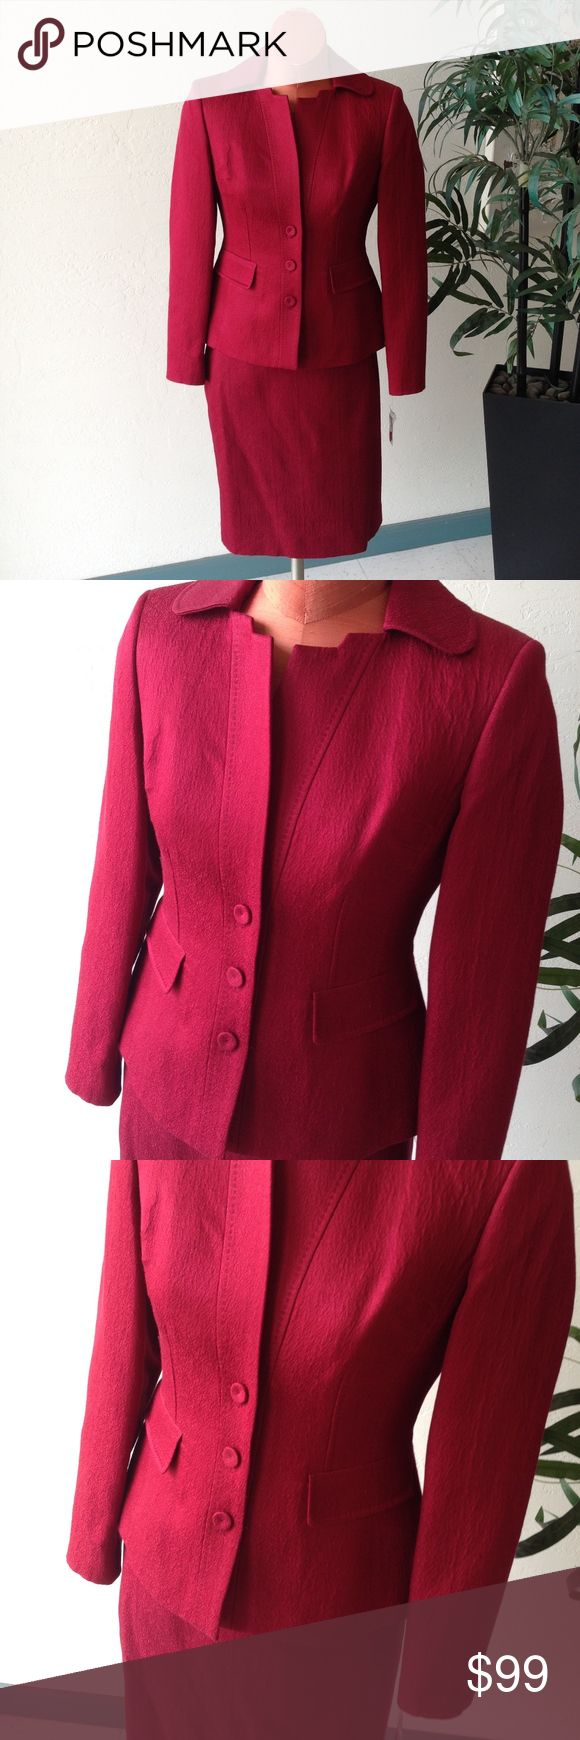 """ANNE KLEIN Petite Ruby Red Career Suit Why wear a boring suit - Jazz it up in this garnet/raspberry/ruby red suit with pleated back  Maker:   Anne Klein Fabric:  Cotton Wool Silk Blend Listed Size: 2 Petite Approximate measurements taken laid flat: Jacket: Armpit to armpit: 17.5"""" Sleeve length: 22.5"""" Length: 21.5"""" Skirt Waist: 14.5"""" Hips: 18.5"""" Length : 19.75"""" NEW with tags and coming from a non smoking home. GA0C10 Anne Klein Jackets & Coats Blazers"""